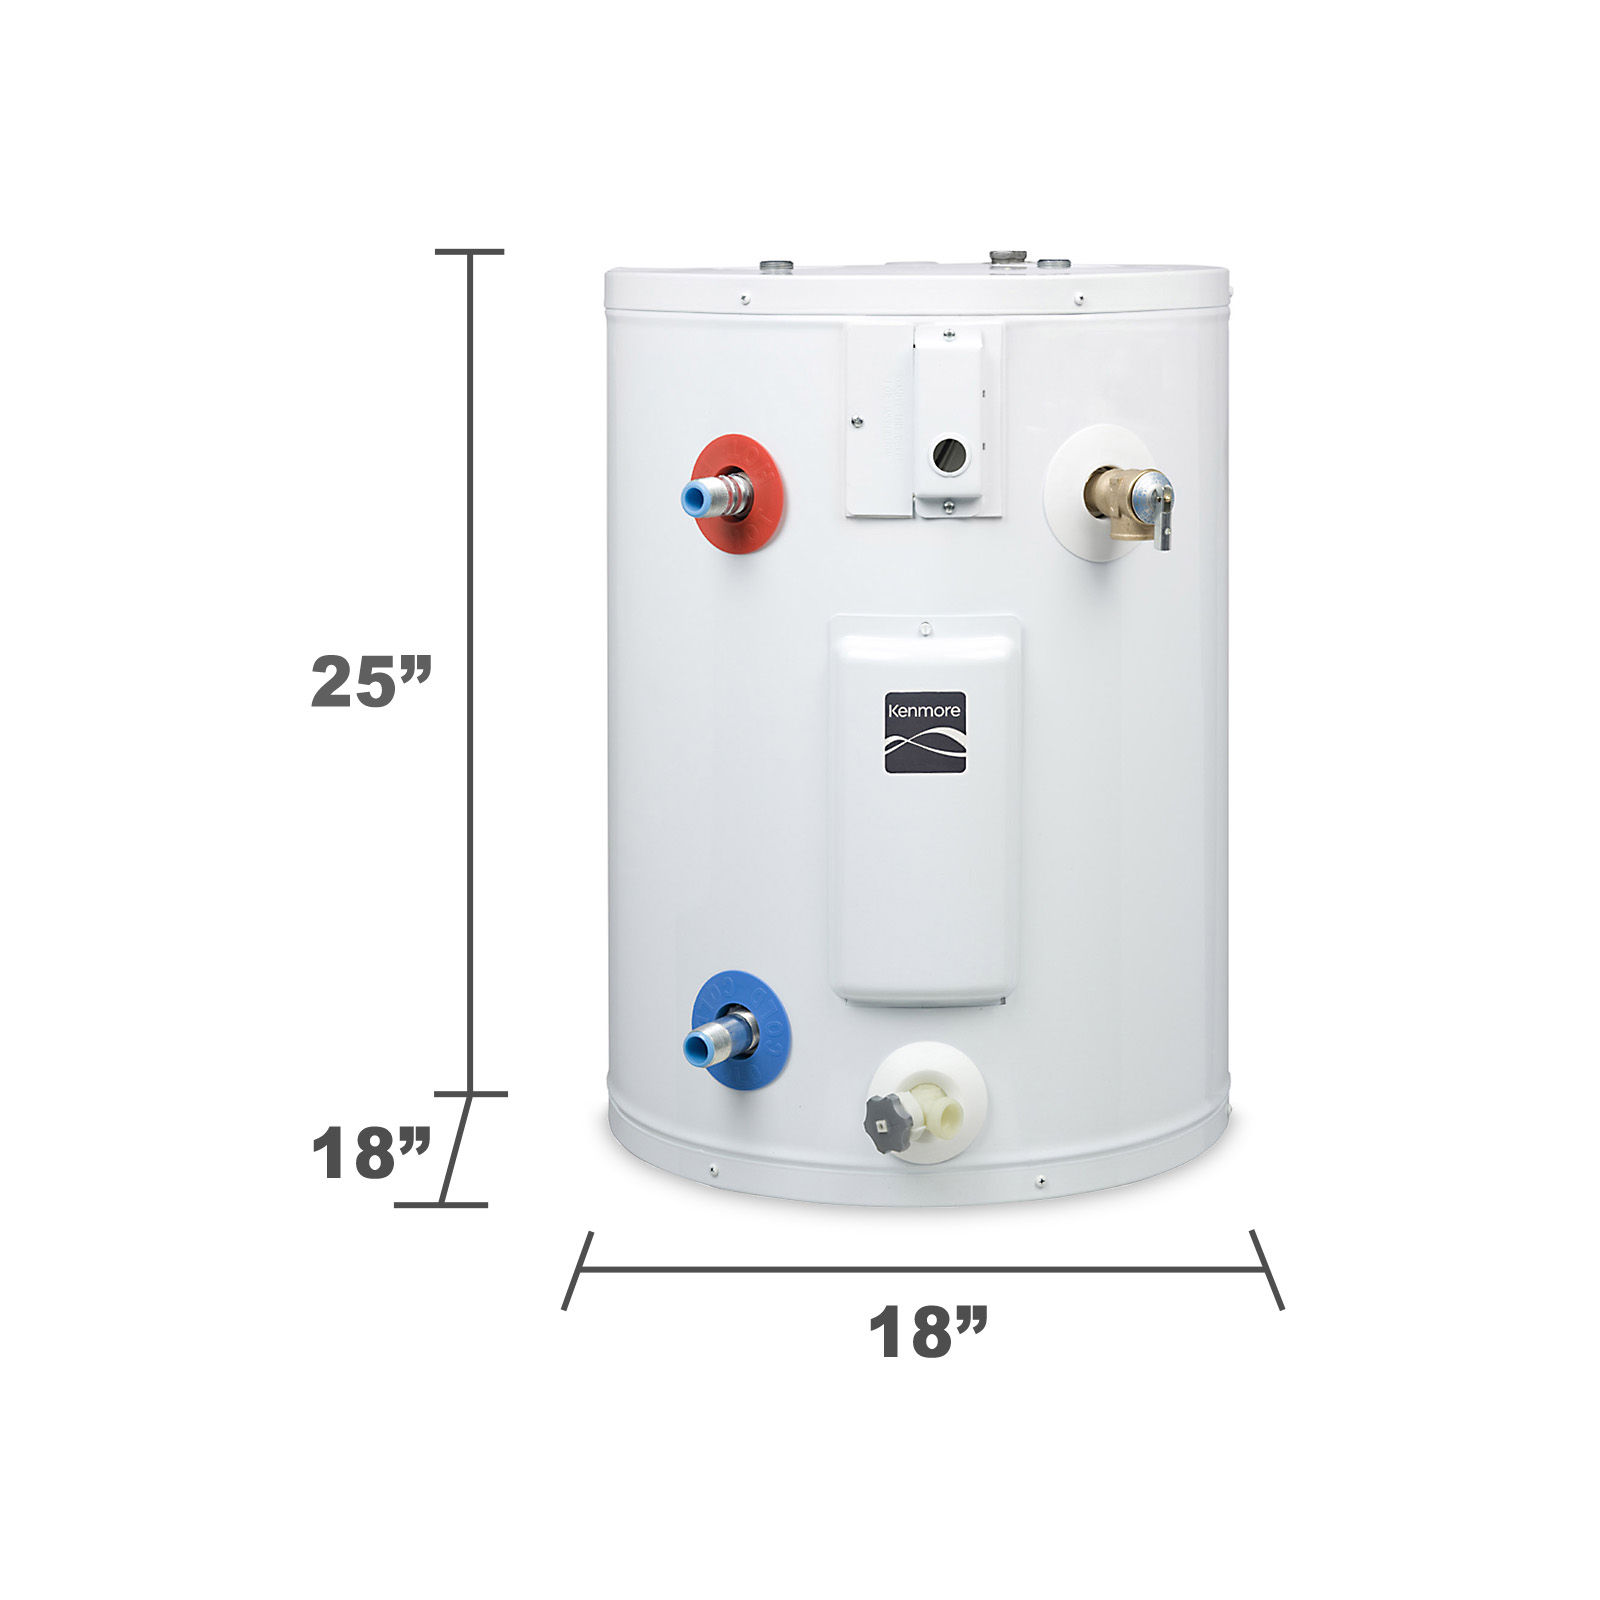 Kenmore 20 gal. 6-Year Compact Electric Water Heater